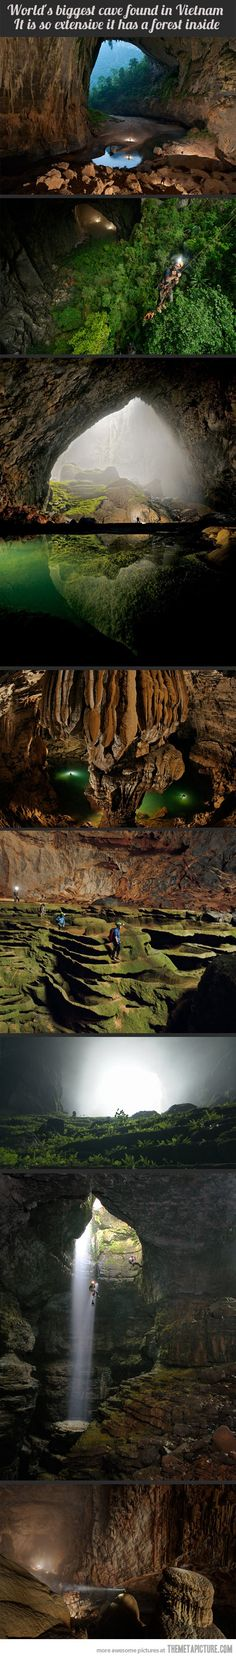 The largest (found) cave in the world - Son Doong Cave in Vietnam. It has a forest inside it!